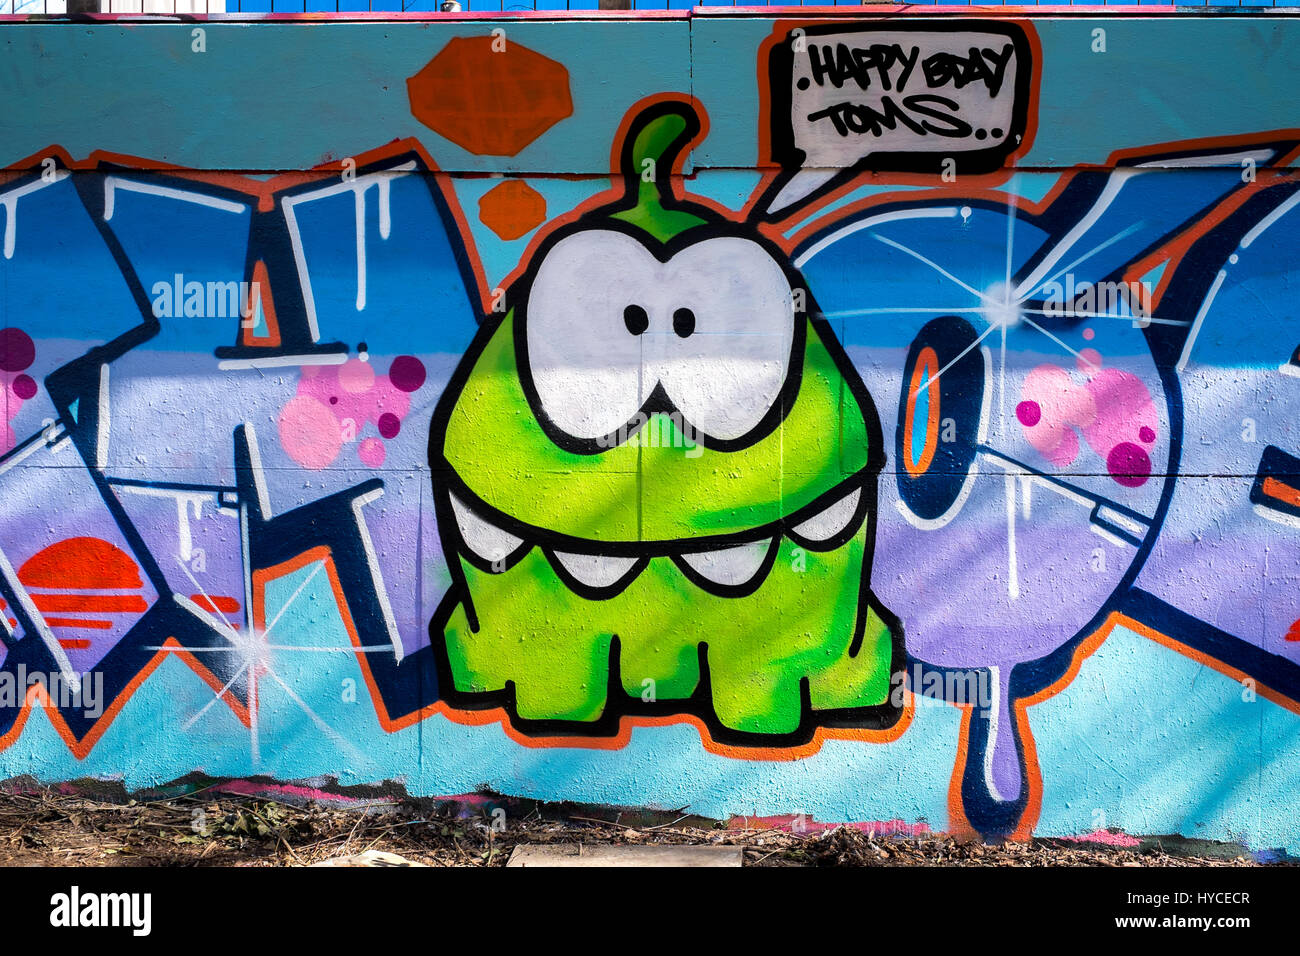 Grafitti Art Copenhagen Denmark Stock Photo Alamy All of the samples below were created for free here at. https www alamy com stock photo grafitti art copenhagen denmark 137343047 html